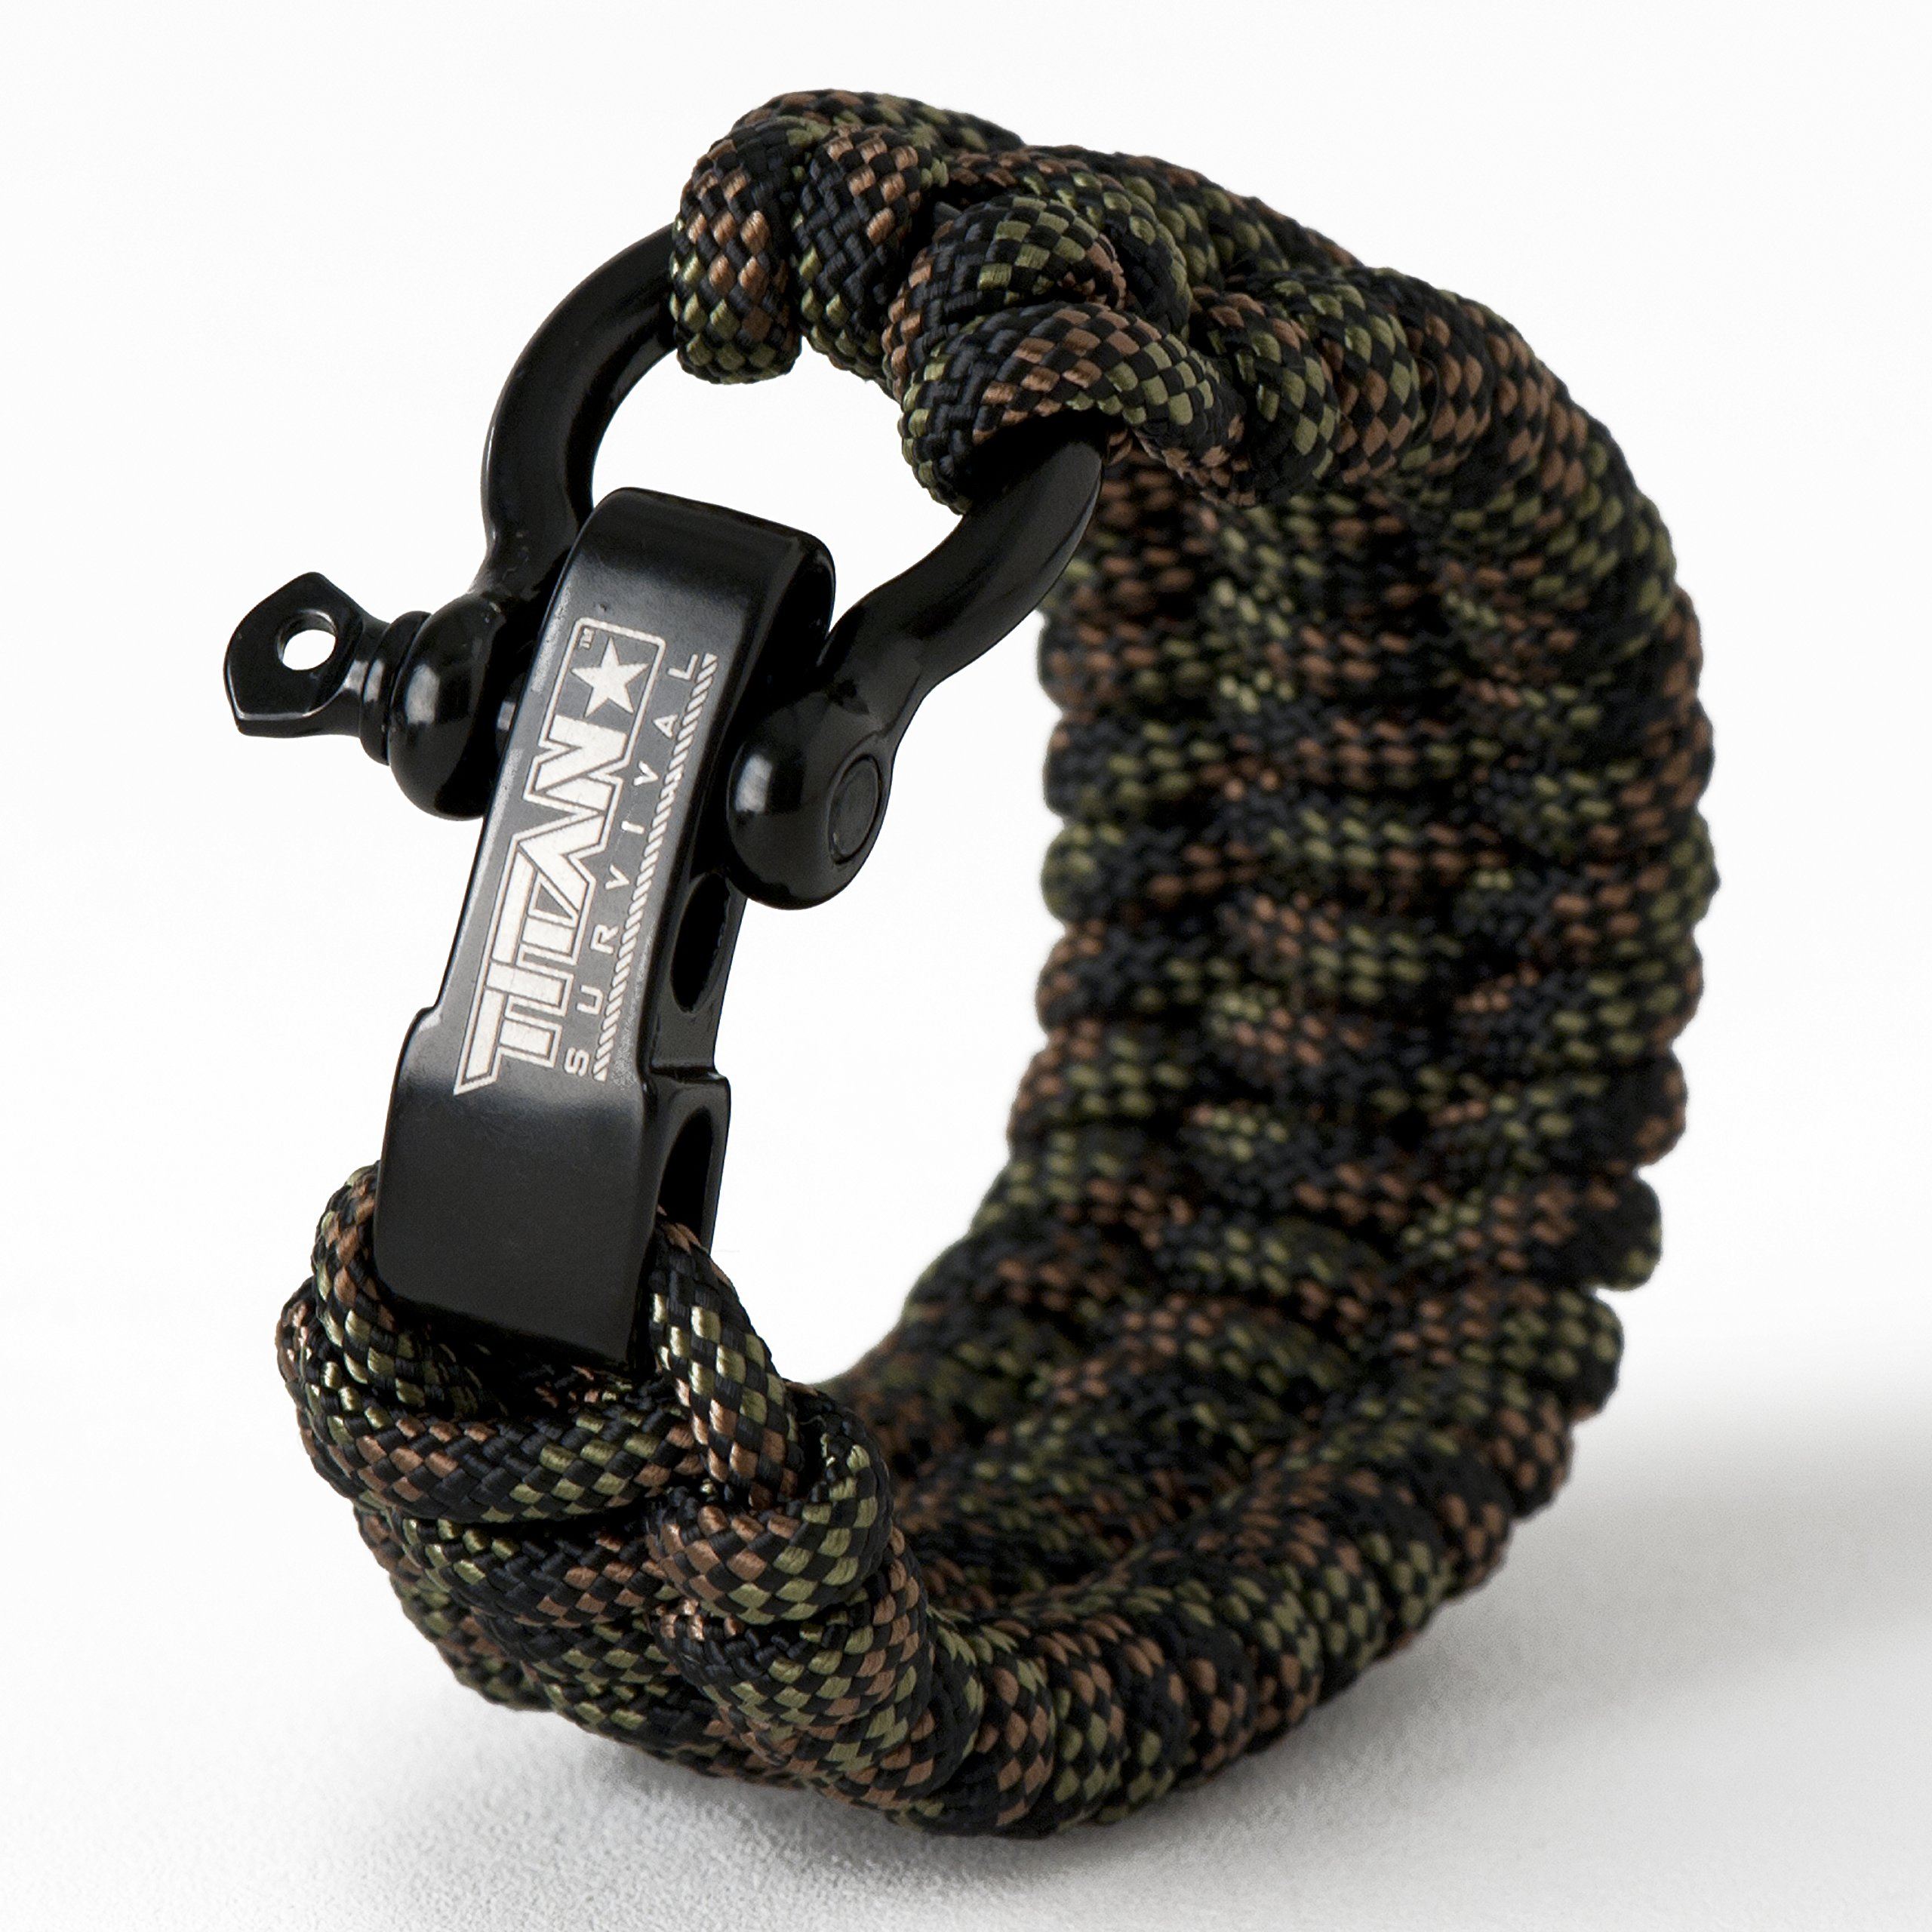 Titan Paracord Survival Bracelet | DRAGONSCALE | Large (Fits 8'' - 9'' Wrist) | Made with Authentic Patented SurvivorCord (550 Paracord, Fishing line, Snare Wire, and Waxed Jute for Fires).